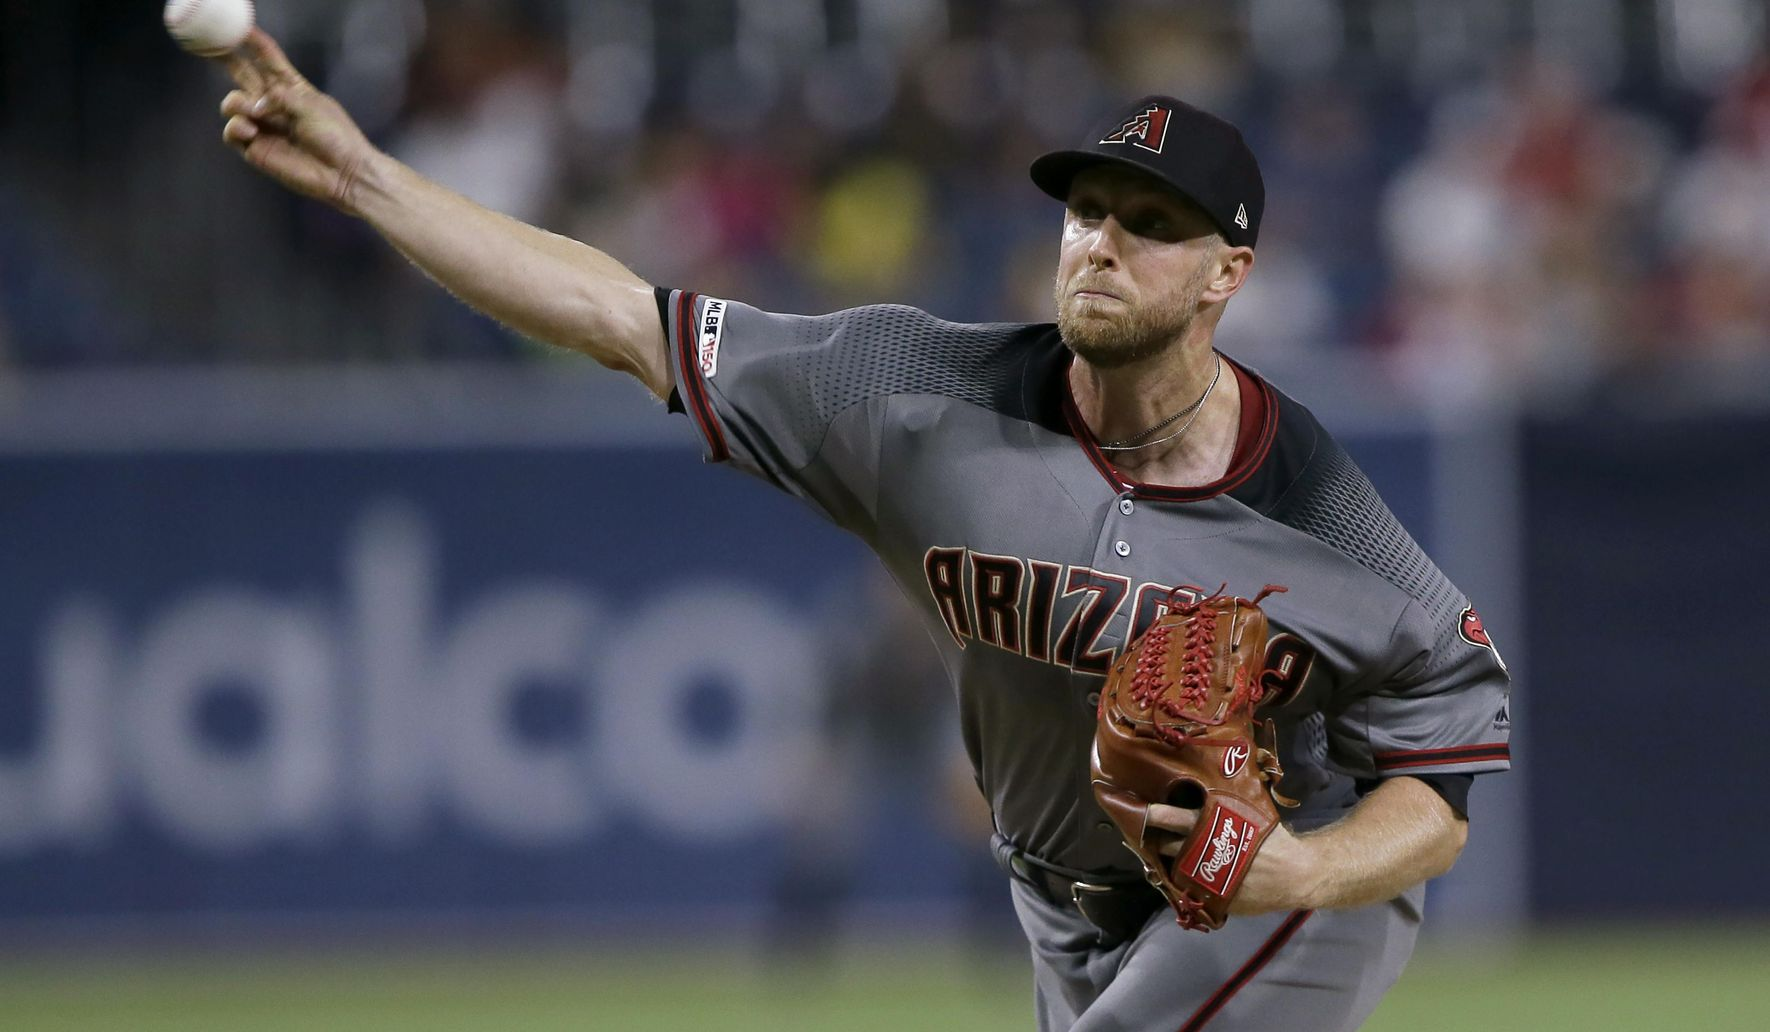 Diamondbacks_padres_baseball_79185_c0-222-3905-2498_s1770x1032